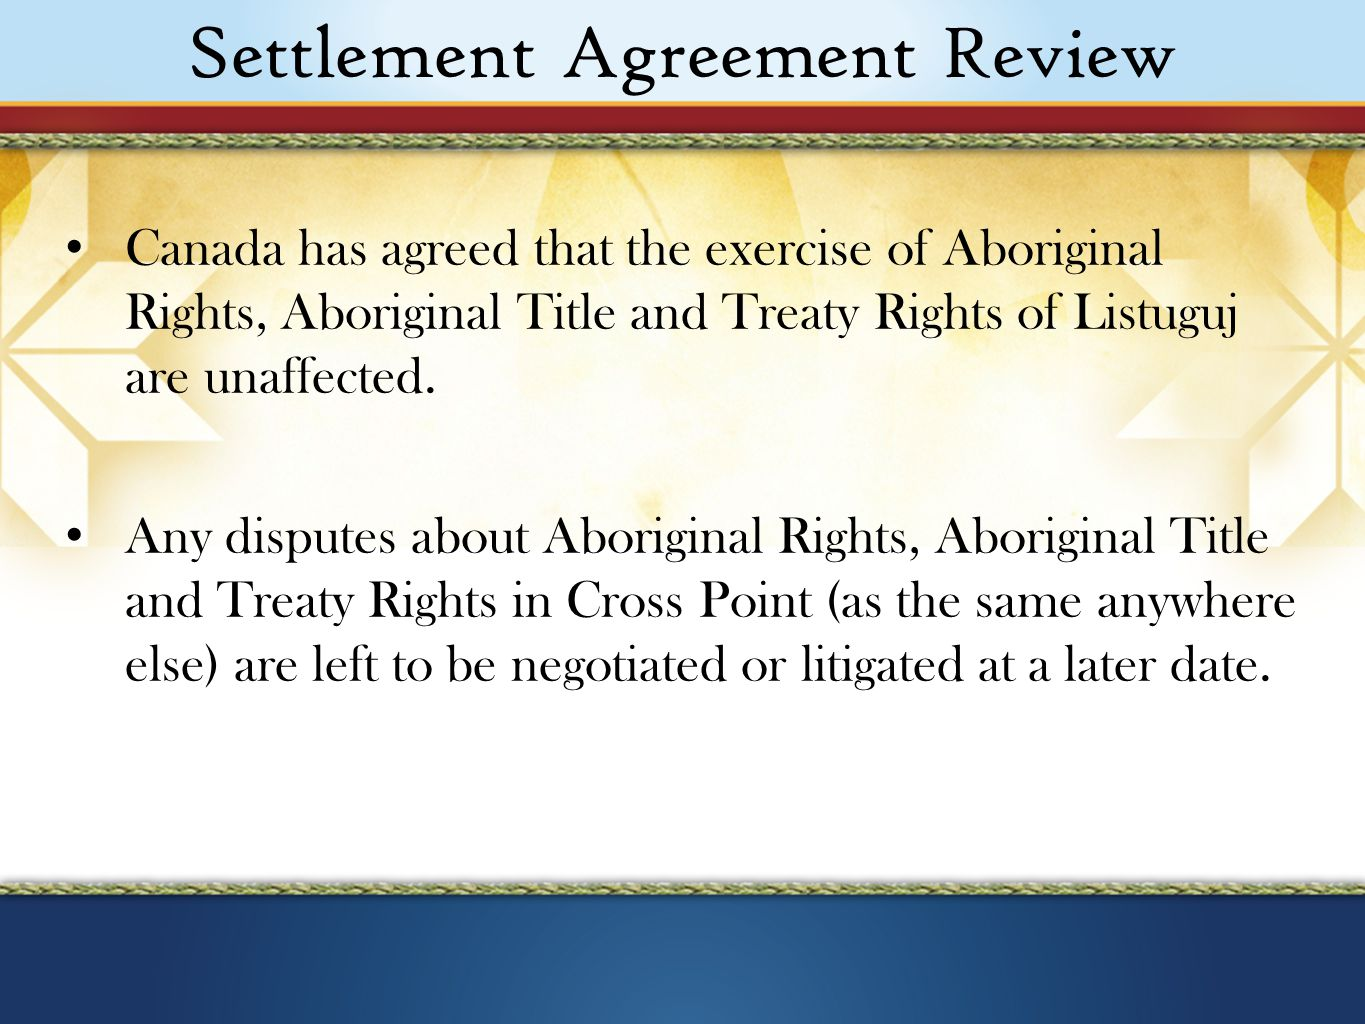 Settlement Agreement Review Canada has agreed that the exercise of Aboriginal Rights, Aboriginal Title and Treaty Rights of Listuguj are unaffected.